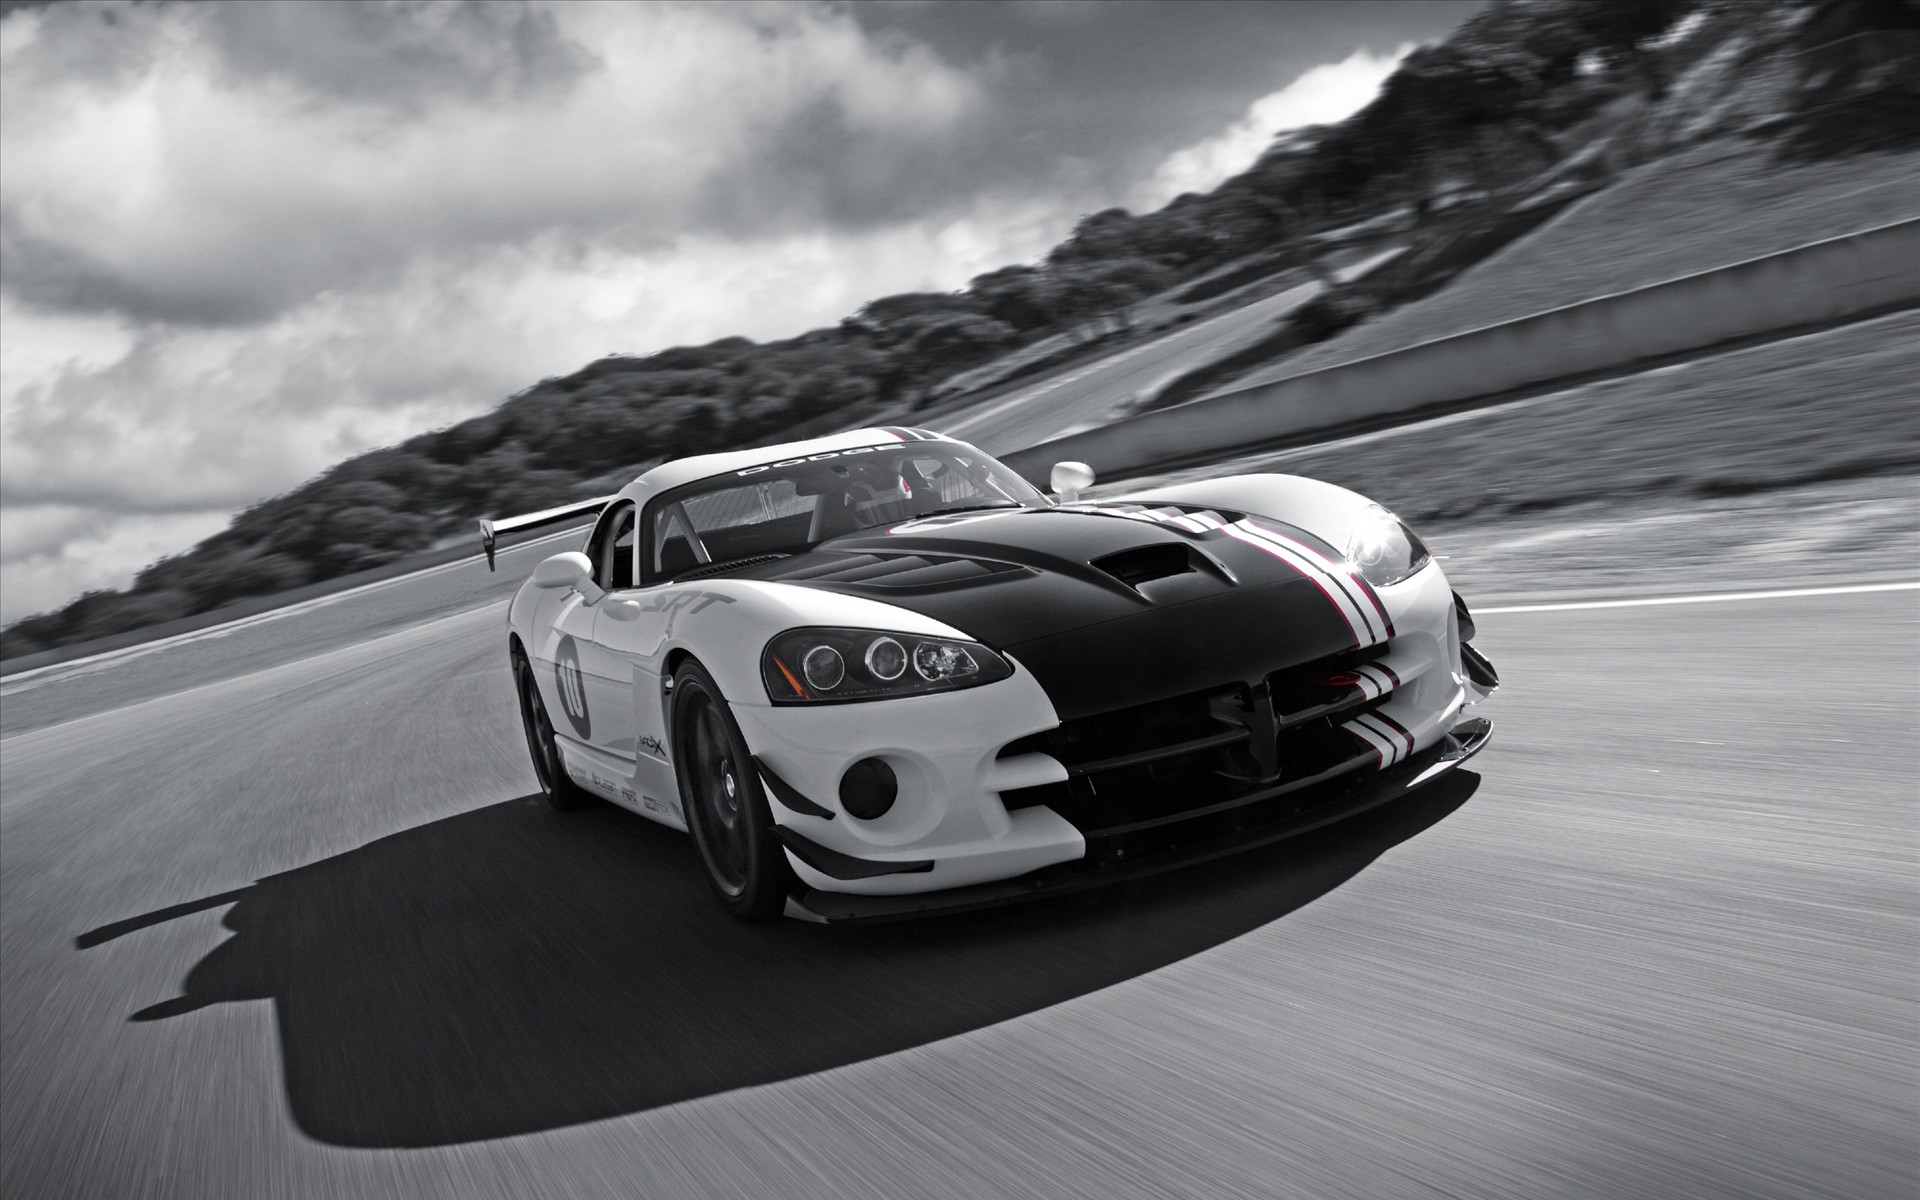 Dodge Viper SRT10 ACR X 2010 3 892.58 Kb